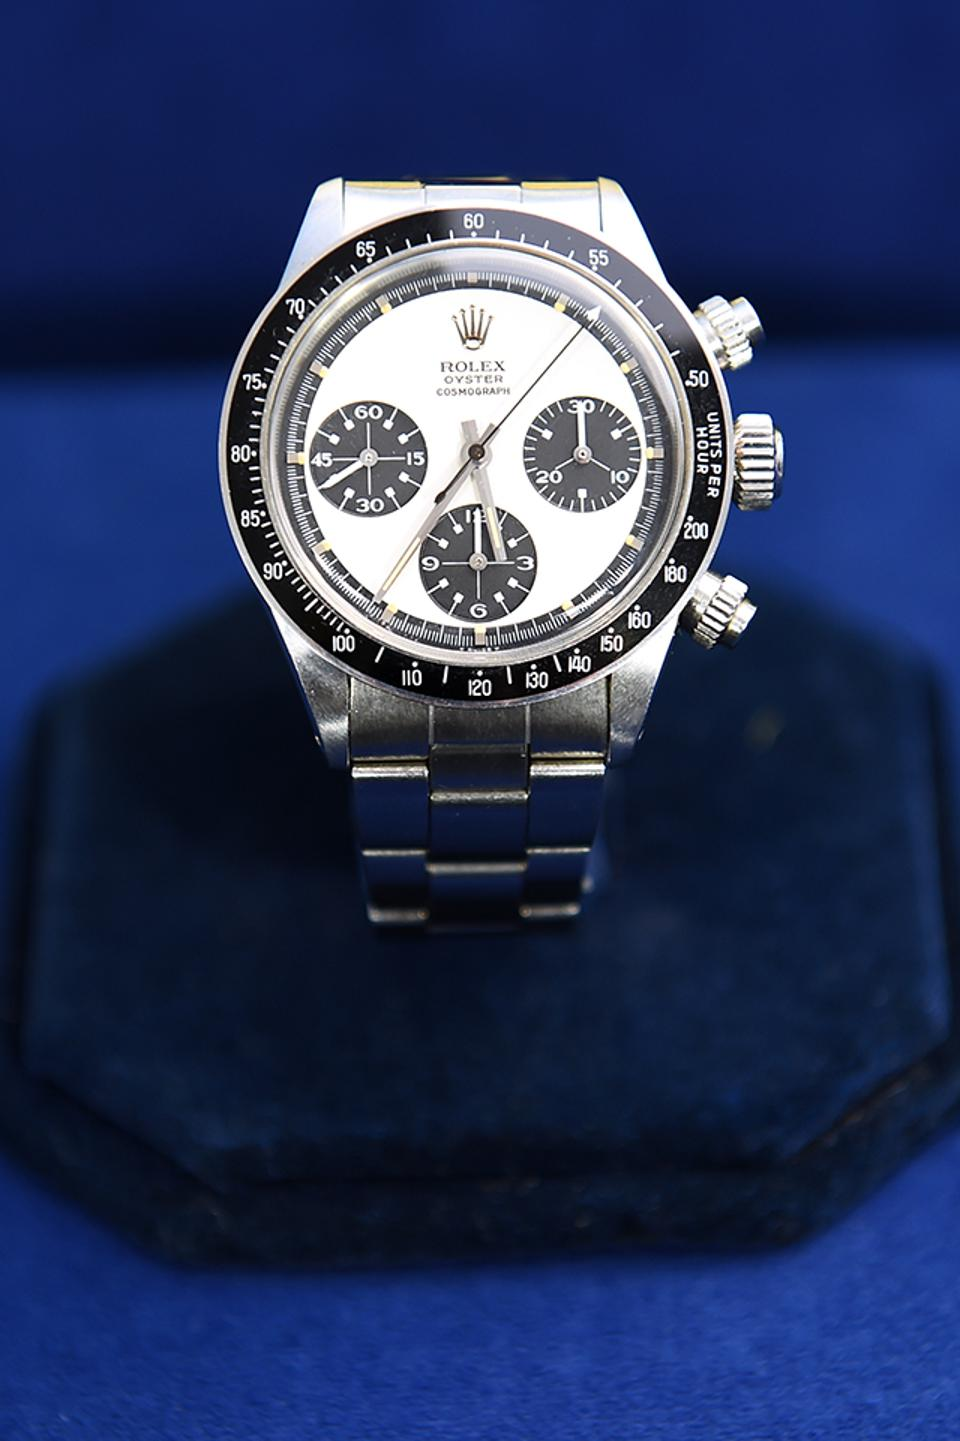 The owner paid $345 for this Paul Newman style Rolex Daytona Ref. 6262, which Antiques Roadshow says could be worth up to $700,000.